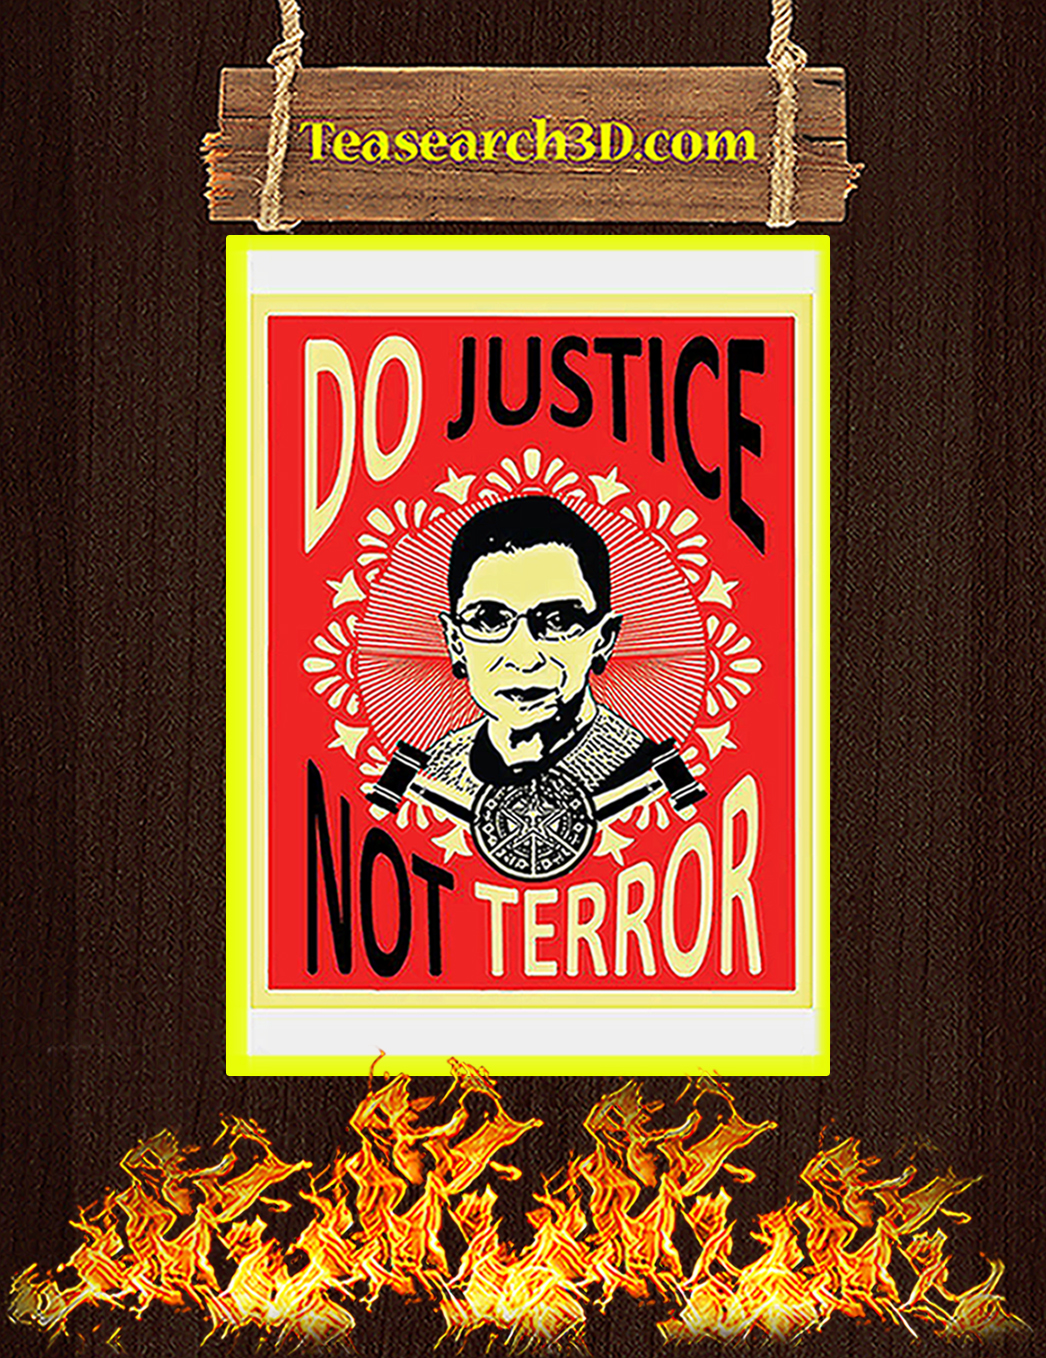 Do justice not terror Ruth bader ginsburg poster A1